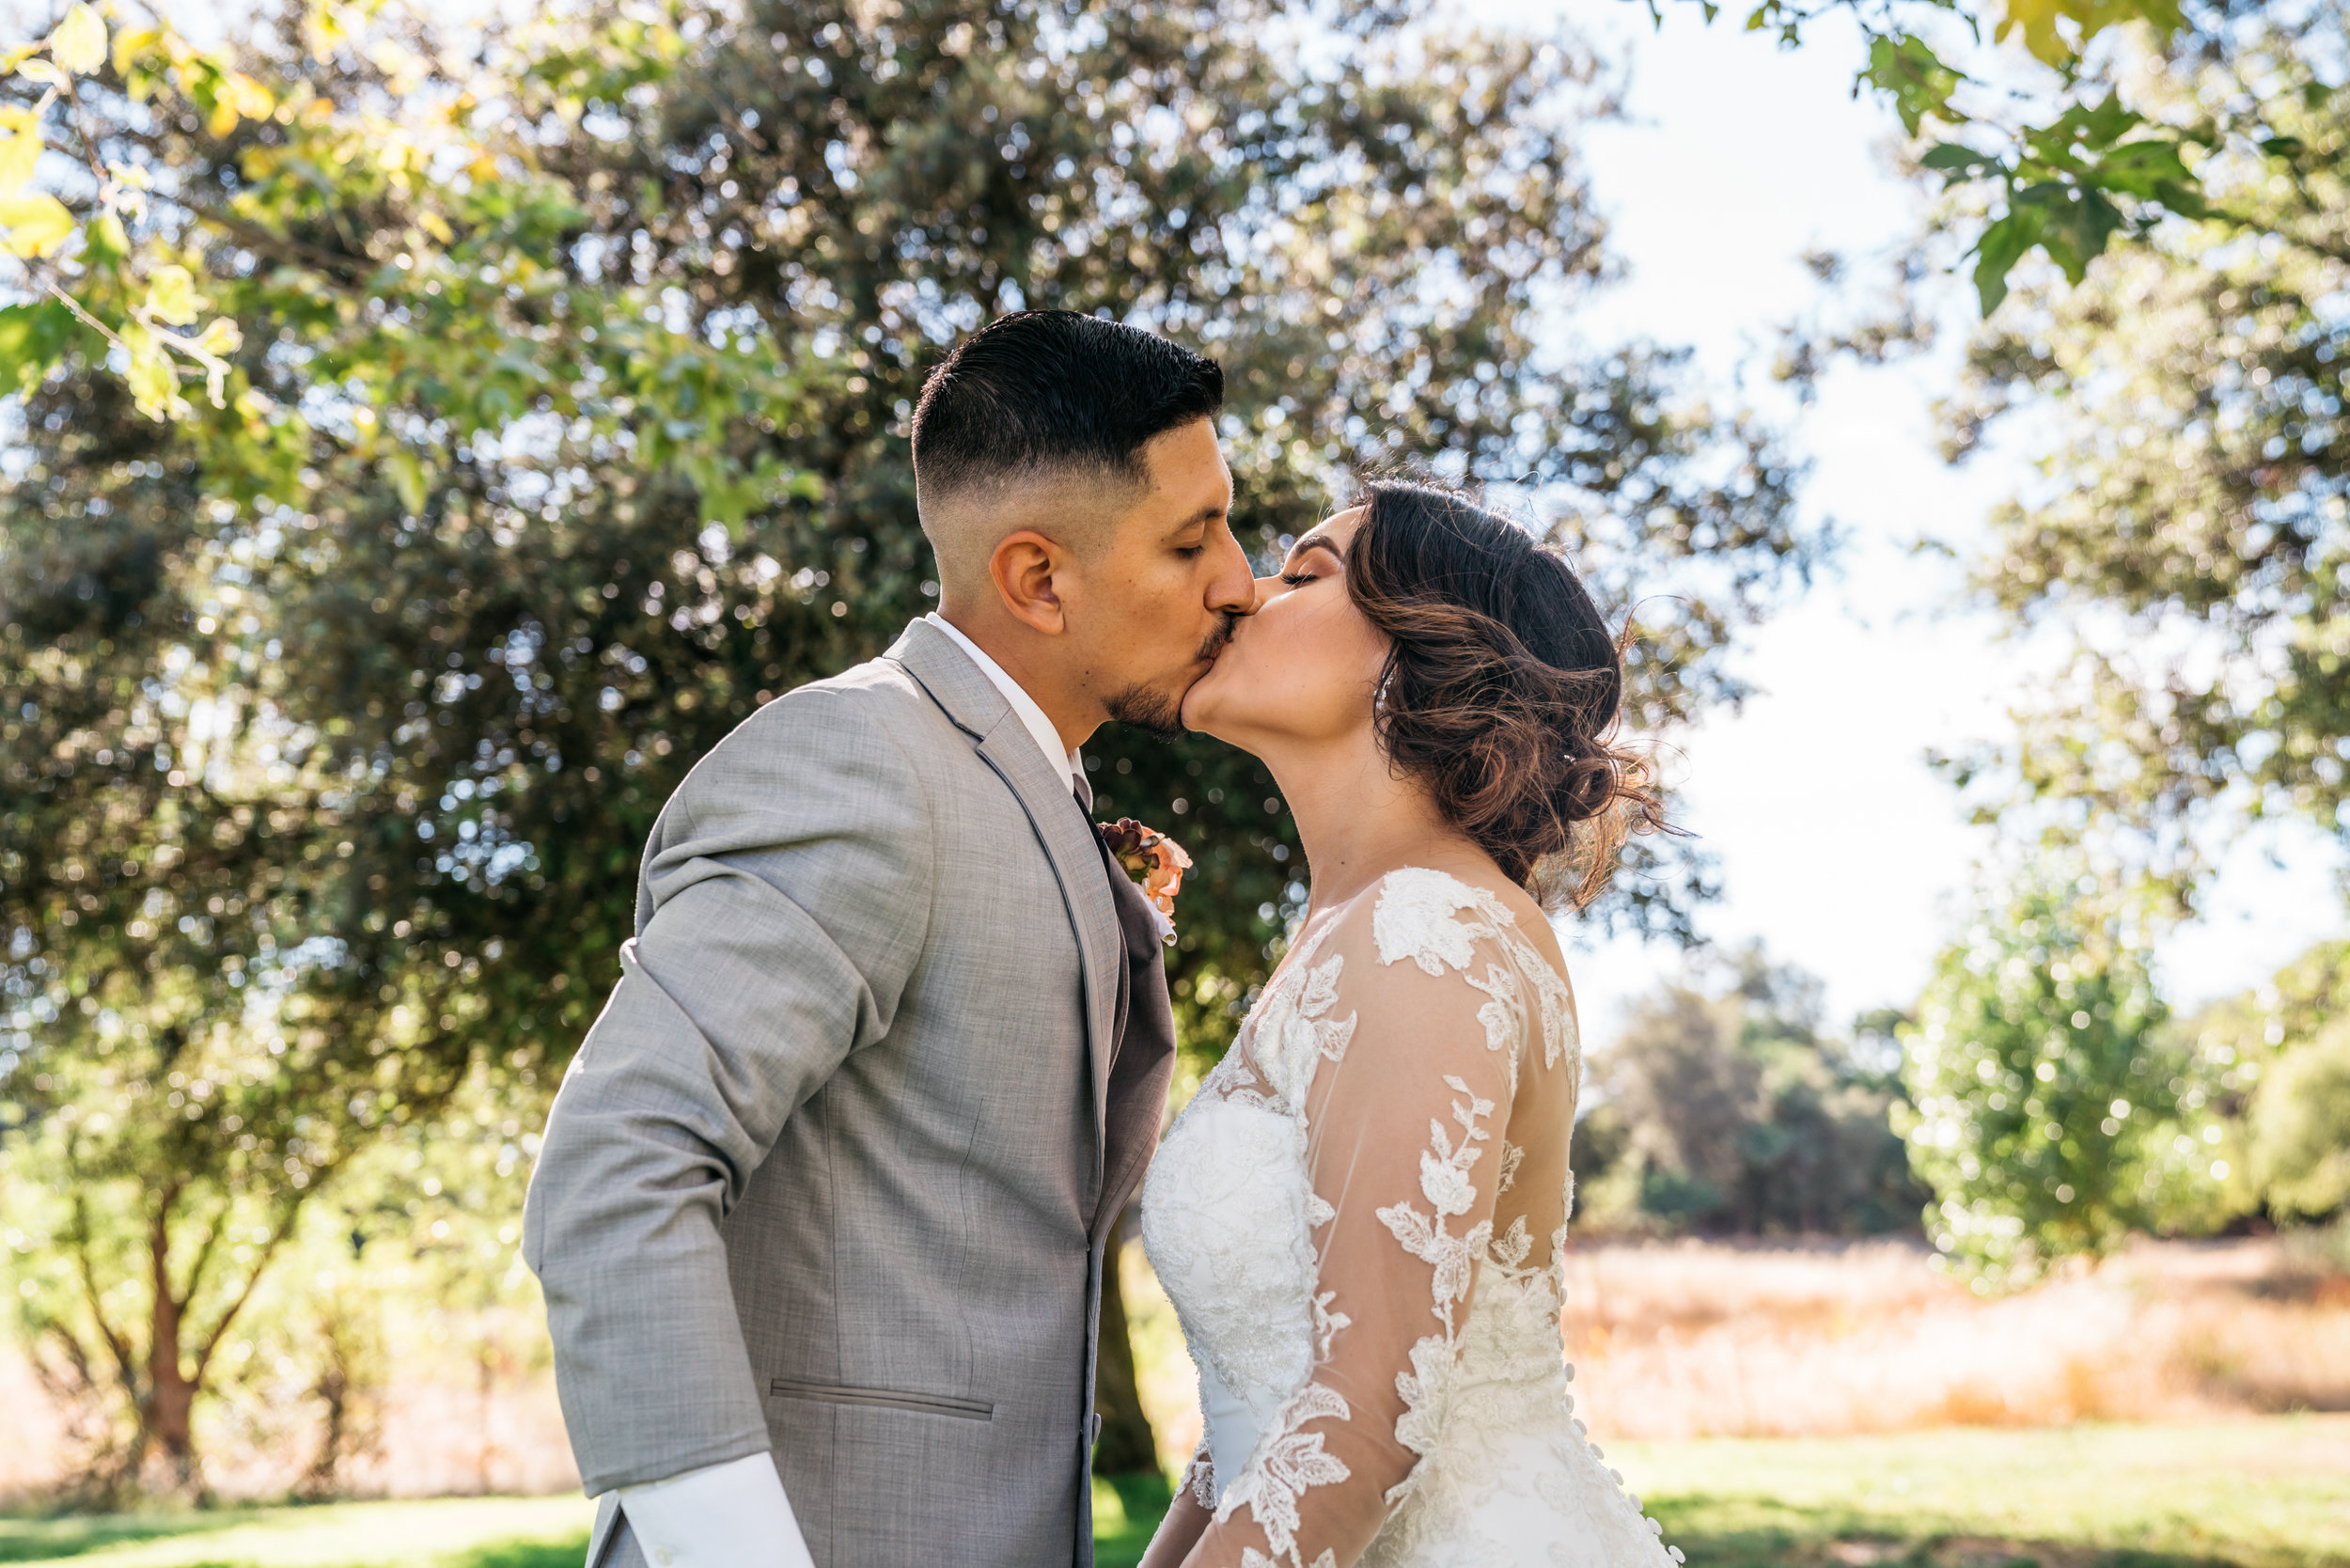 Love and Weddings in San Jose, California